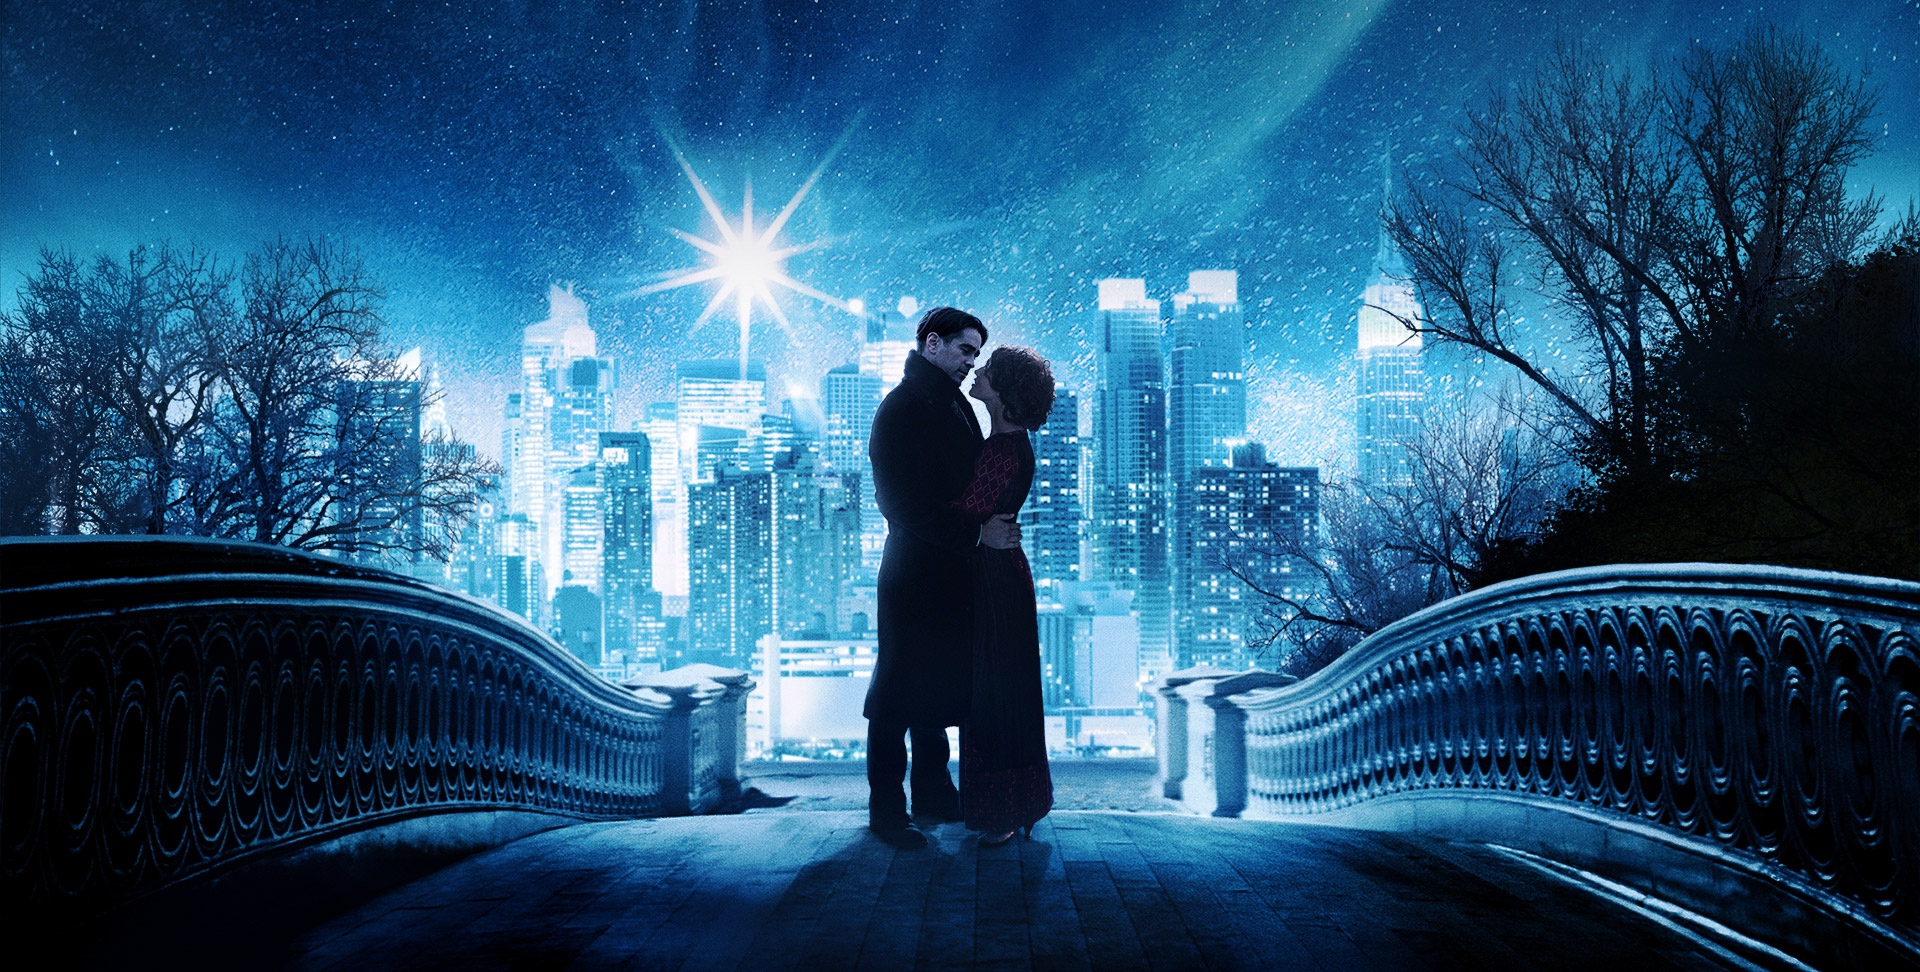 Winter s tale fabulous realms for Romantic things to do in nyc winter